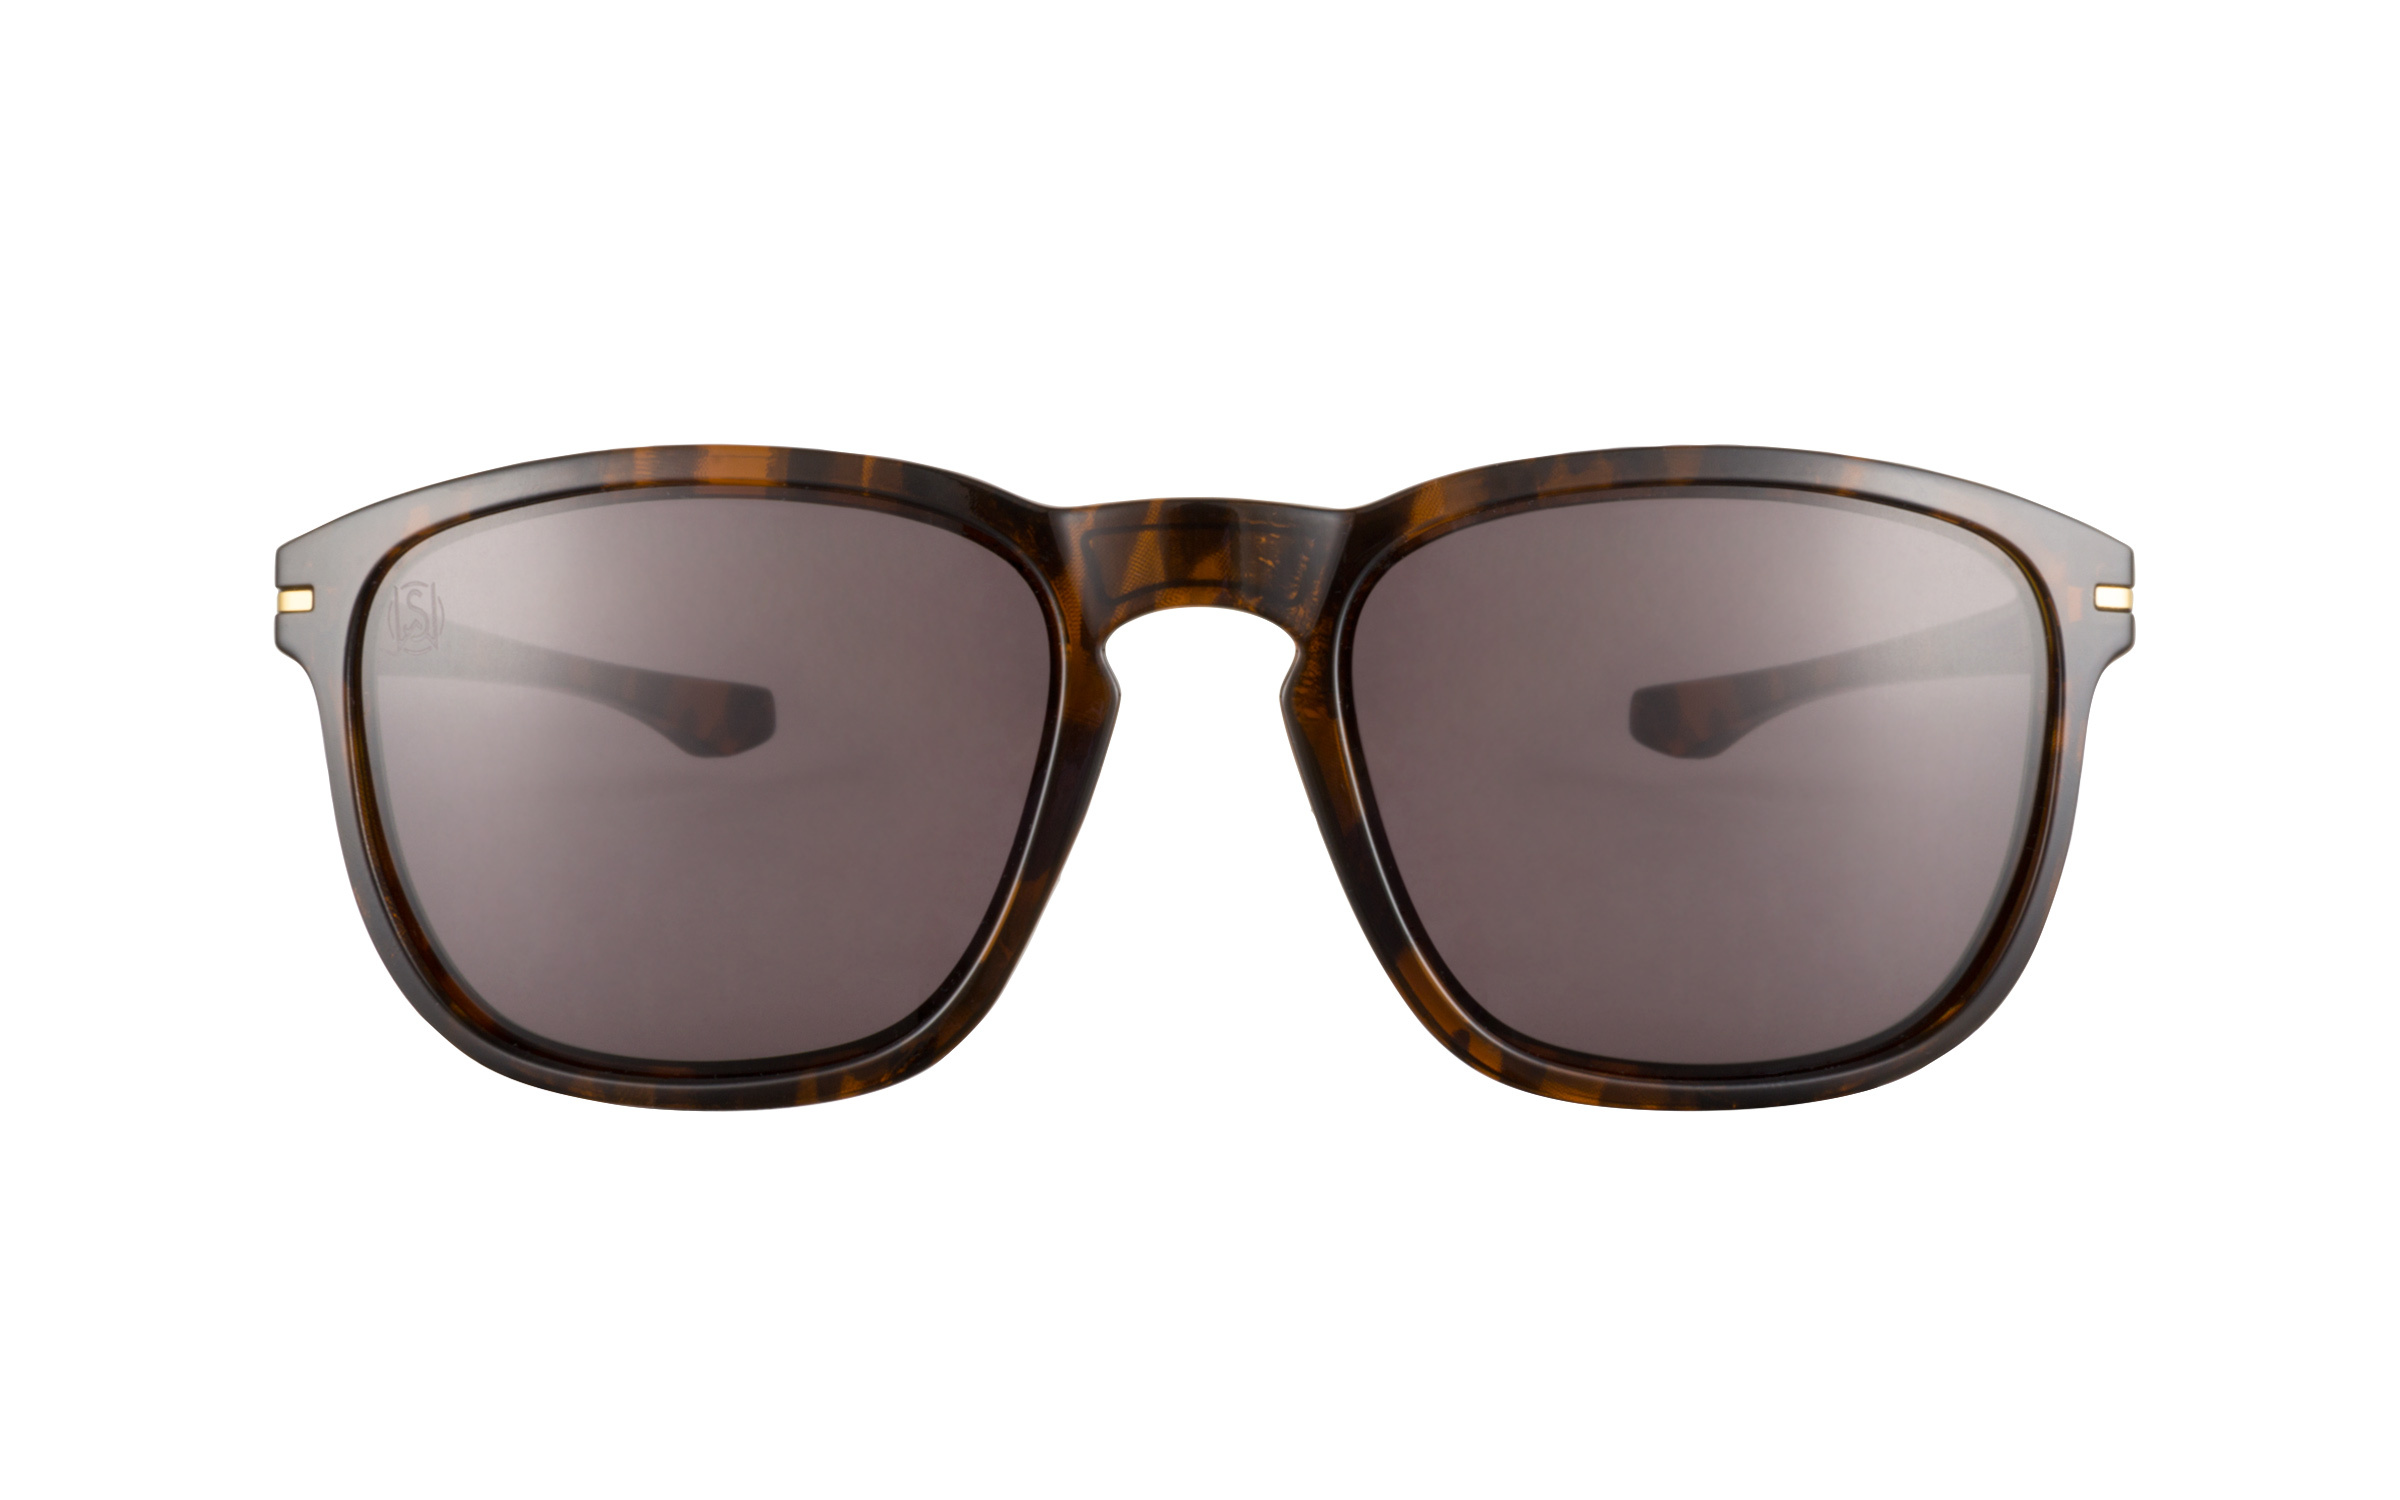 oakley gascan brown tortoise polar sunglasses  product image of oakley enduro brown tortoise